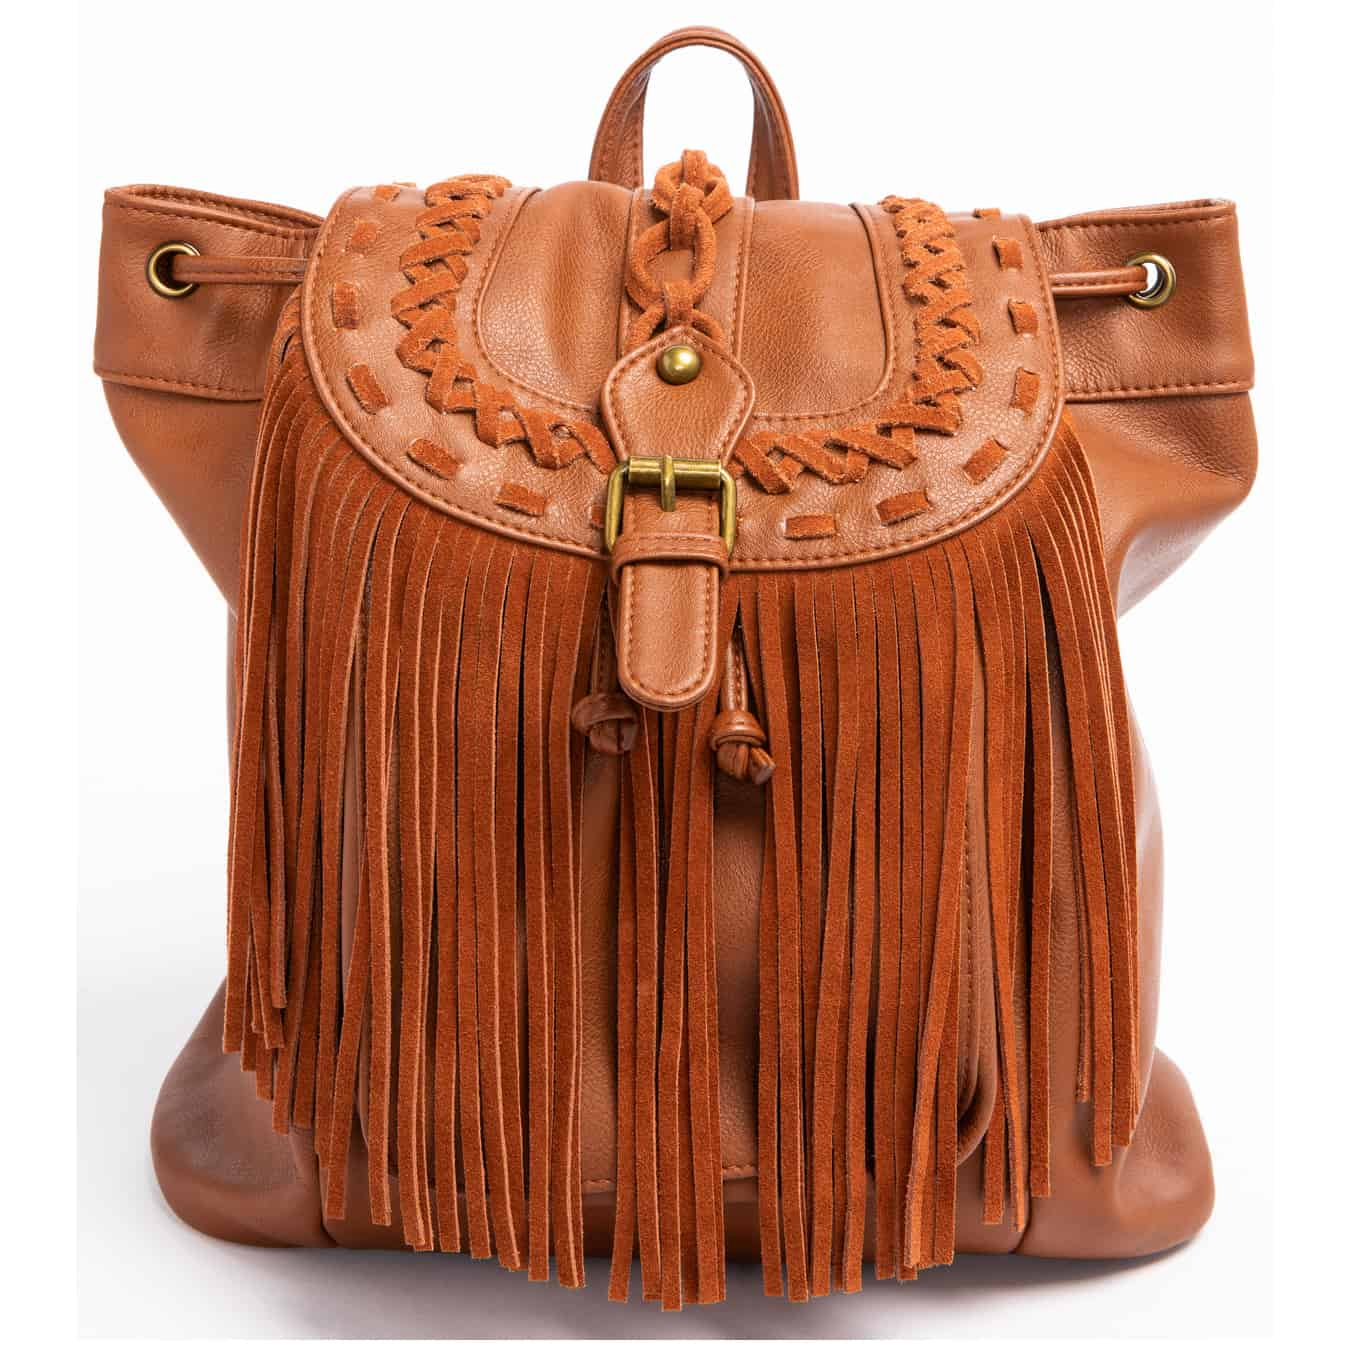 Shyanne Women's Fringe Backpack, $64.99